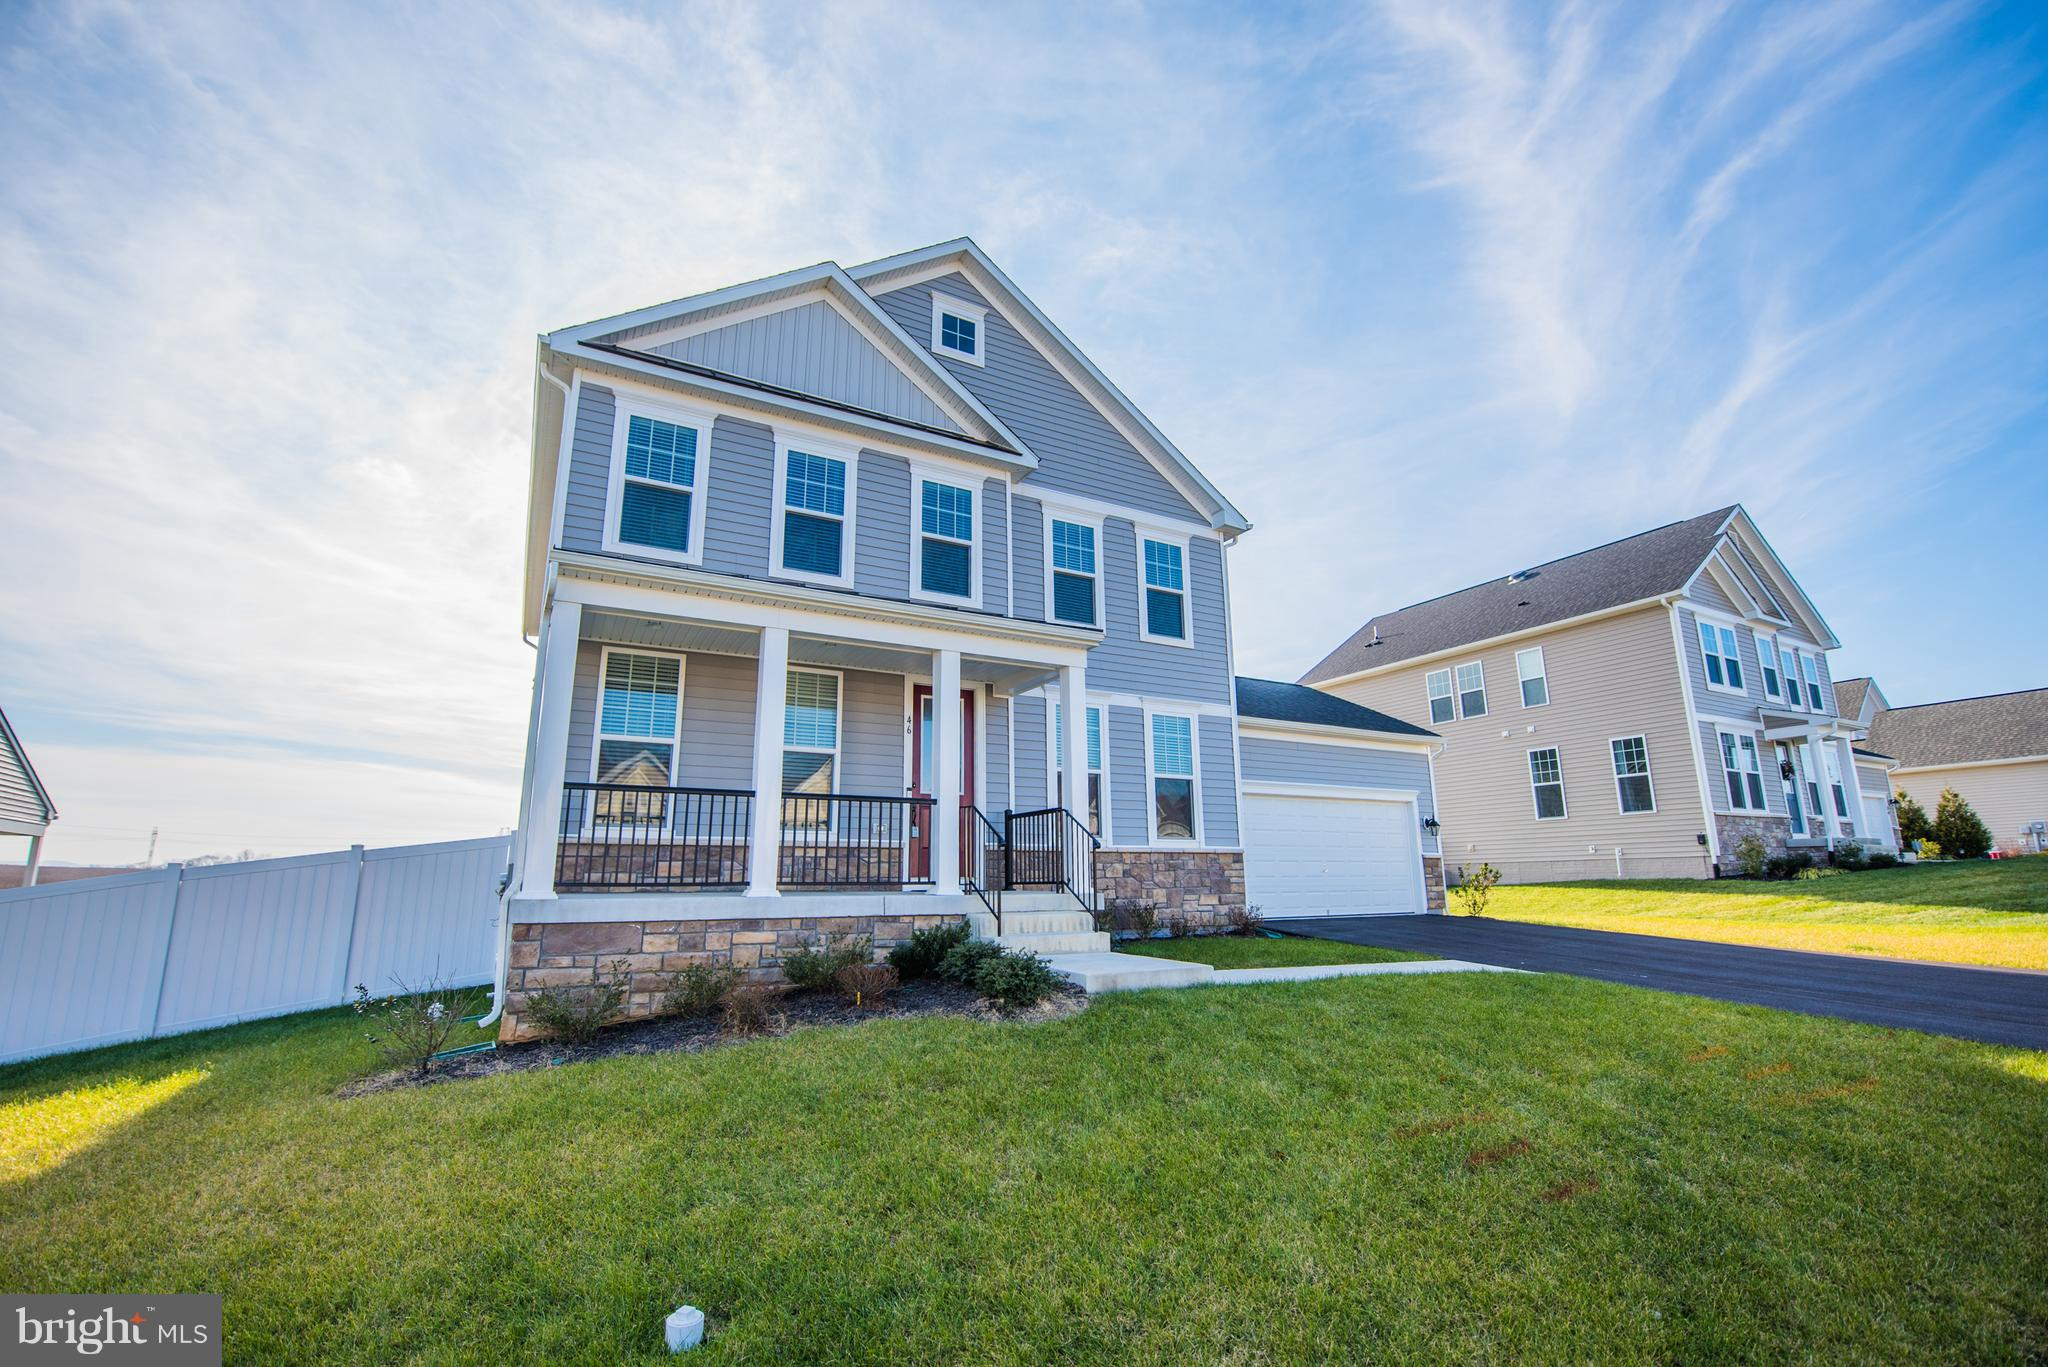 Ready to move in! SIX  (6) Bedrooms - two Master Suites!  4.5 Baths ~ This  is The Shenandoah model